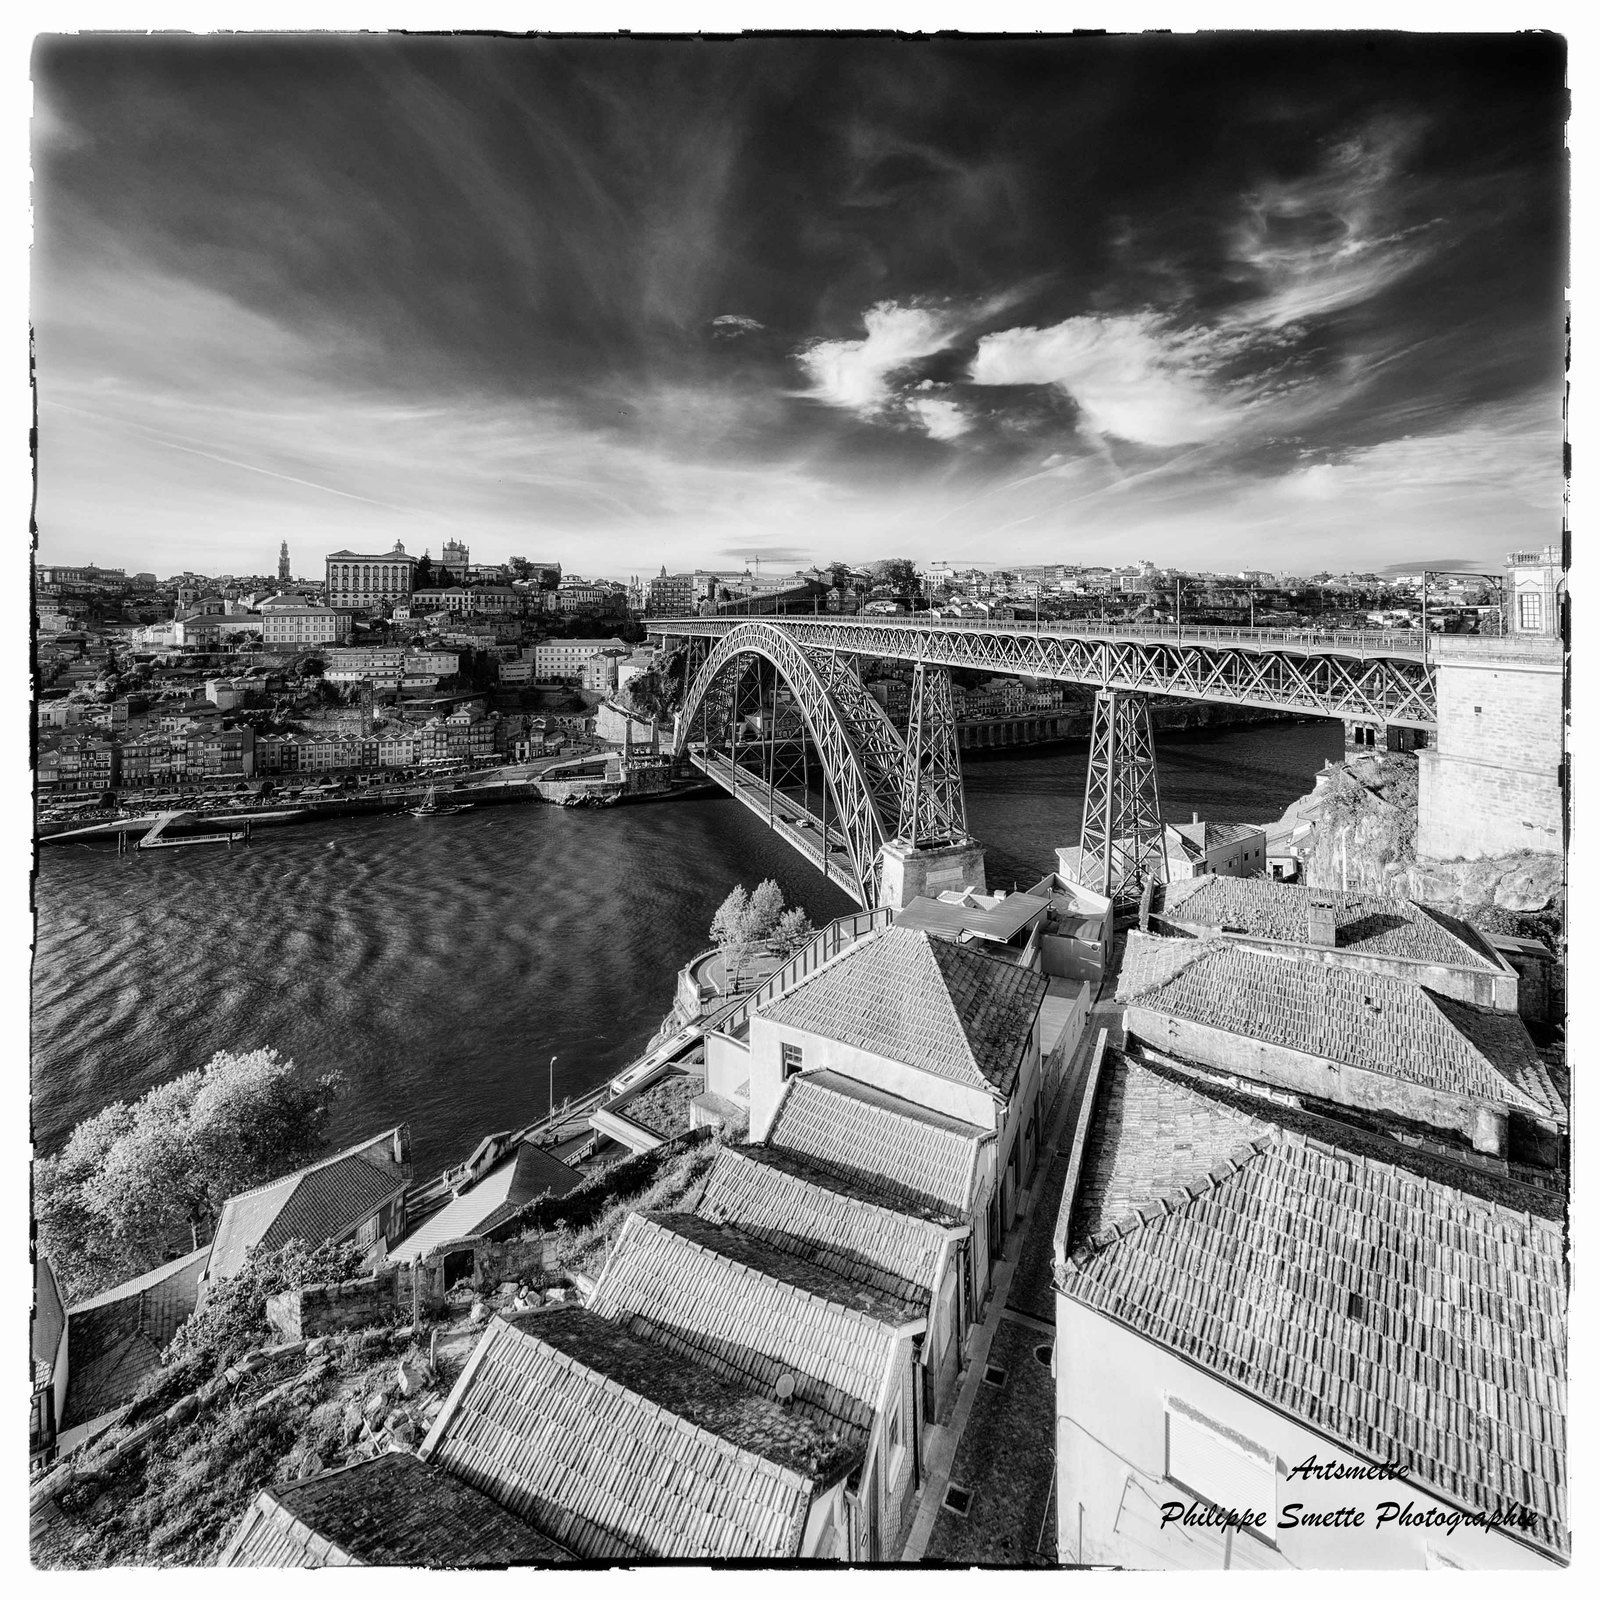 'I Love' Landscape Photography  SHOT OF THE DAY  CONGRATULATIONS +Philippe Smette you are the winner of the 'I Love' Landscape Photography 'Shot of the day' award.   Great black and white shot! love the perspective on the bridge, the sky and the creative cut out.....